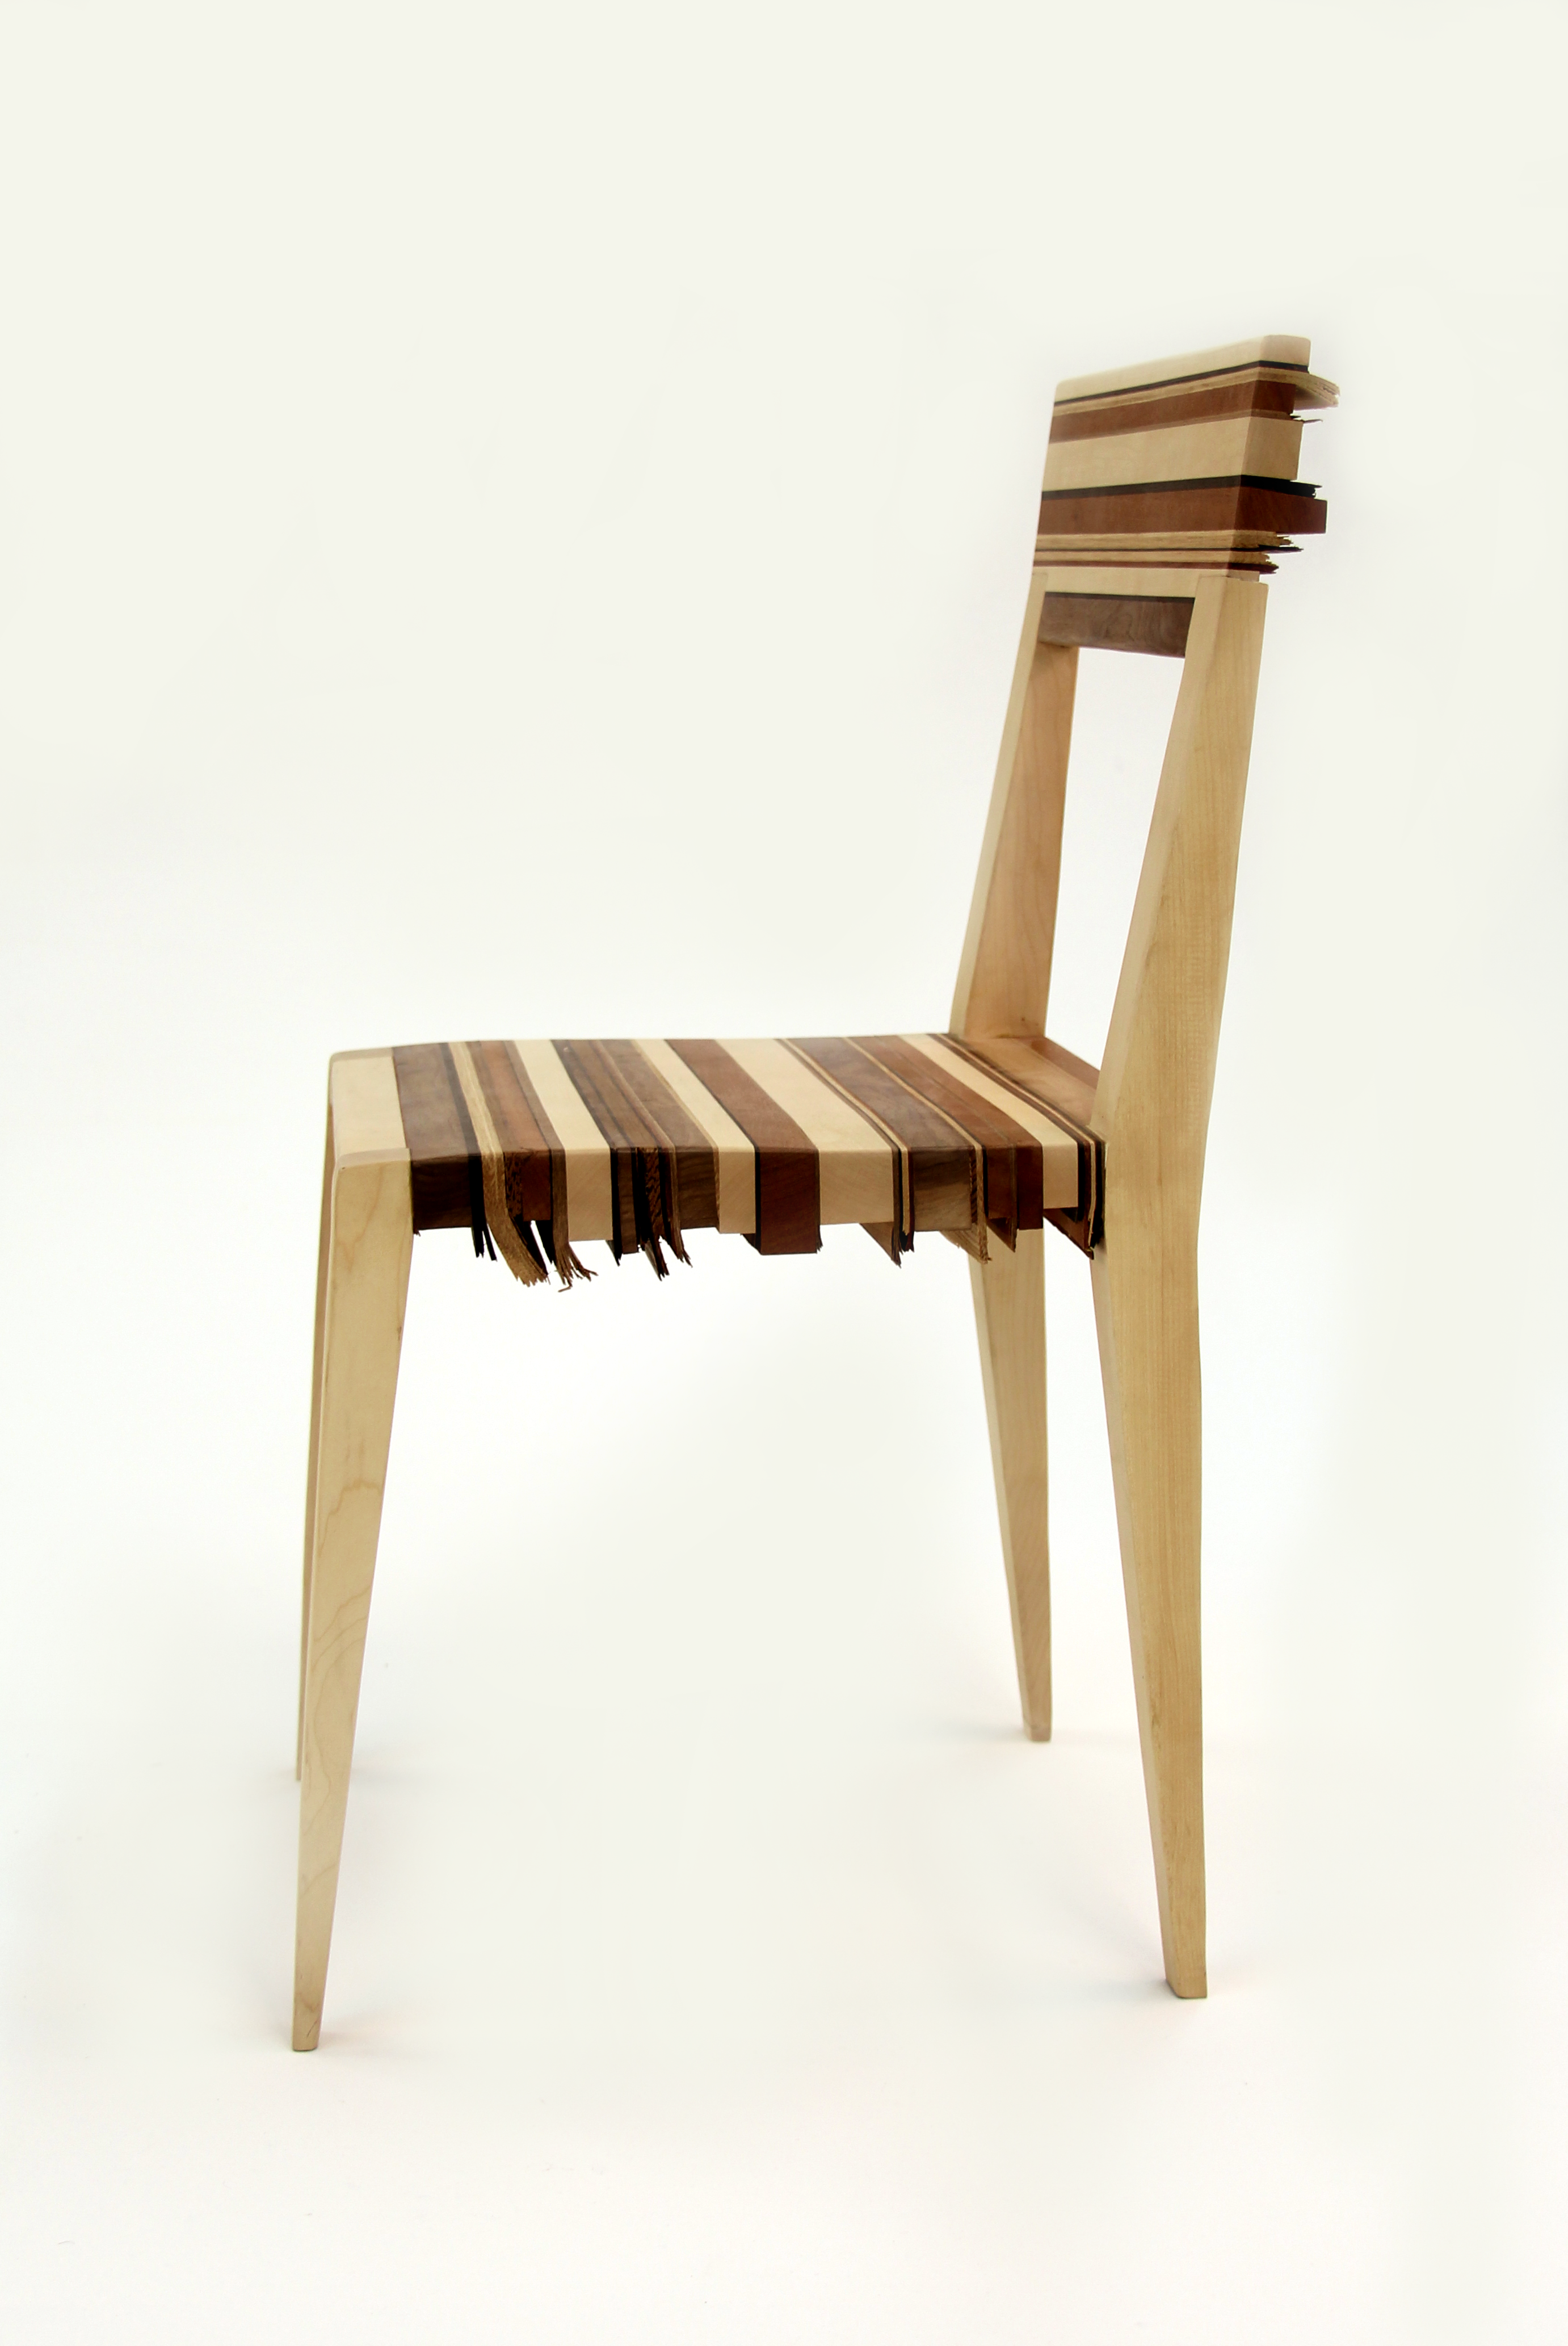 Topographic Chair Made Of Different Types Of Wooden Scraps By Liran Naim Chair Wooden Furniture